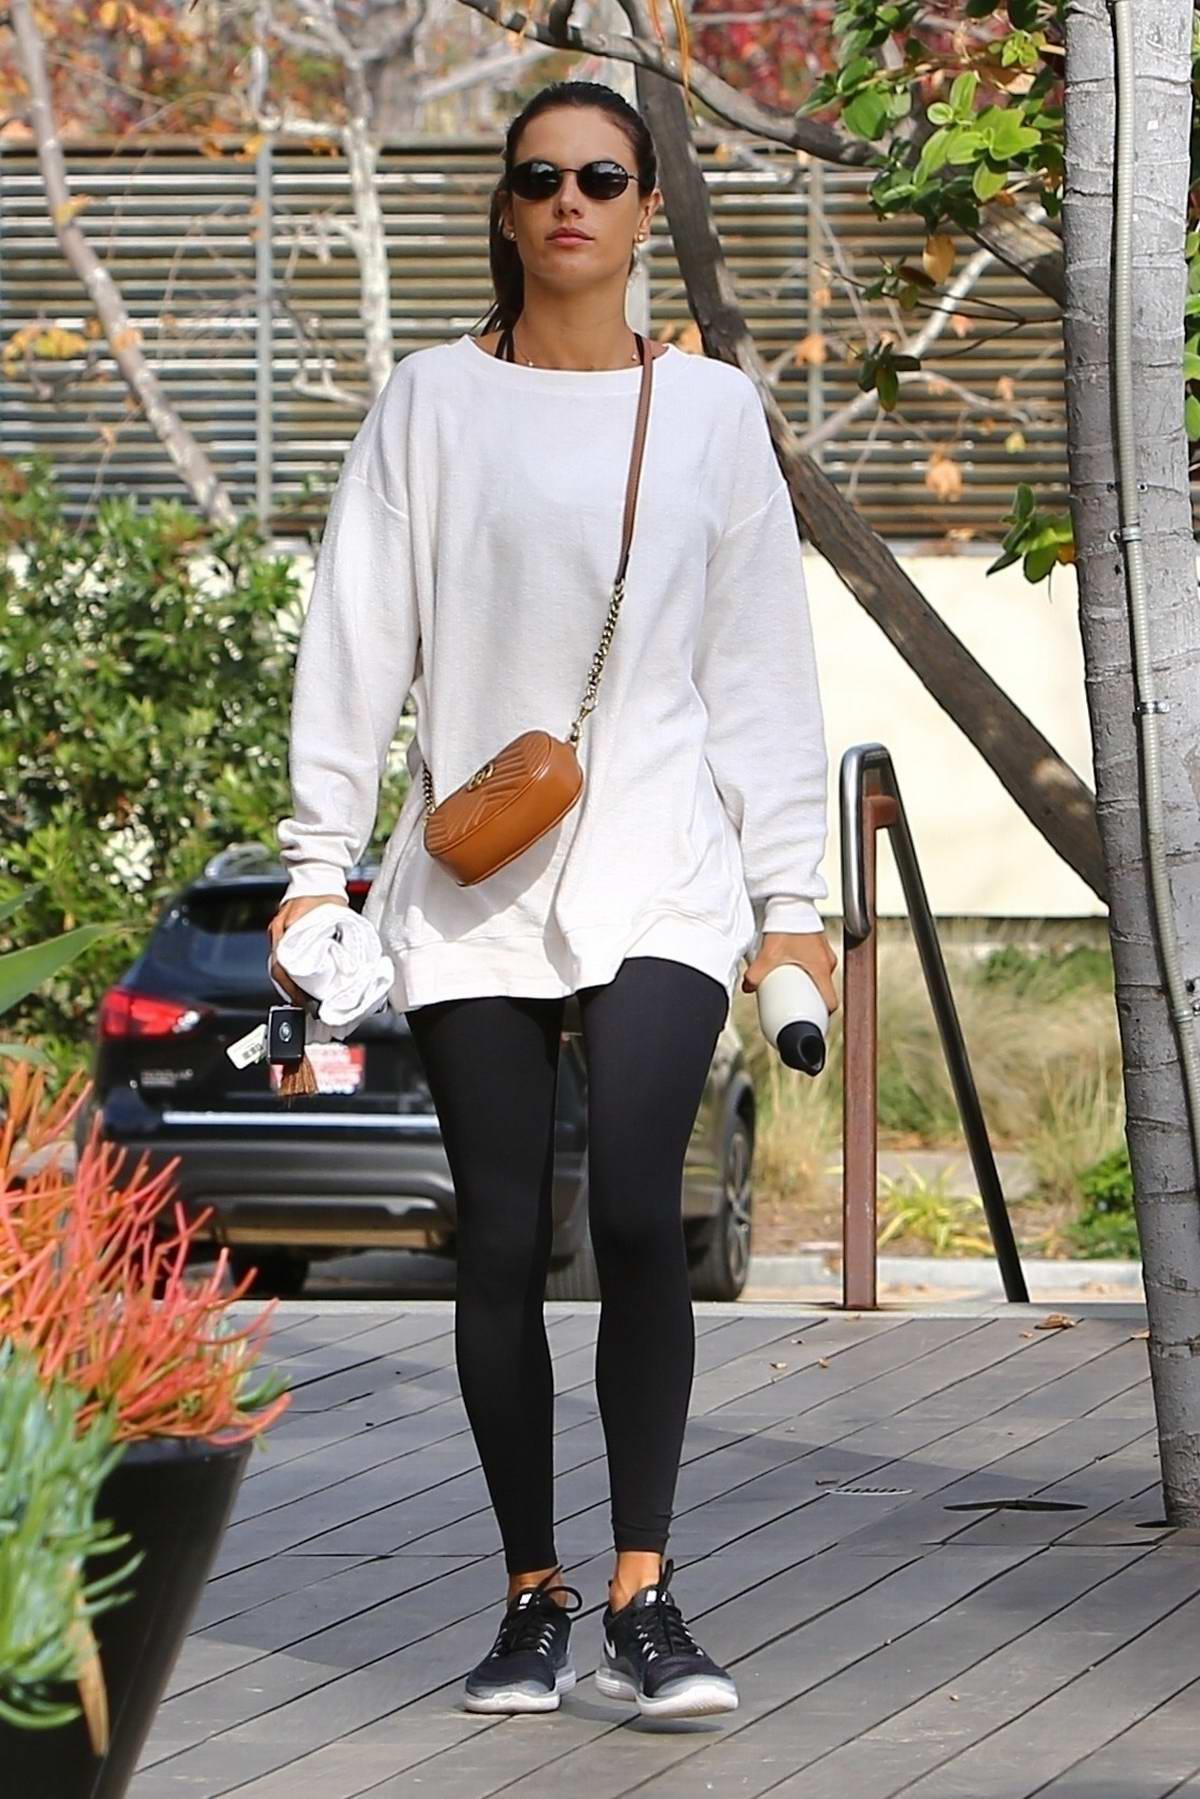 Alessandra Ambrosio wears a white sweatshirt and black leggings as she hits the gym in Malibu, California